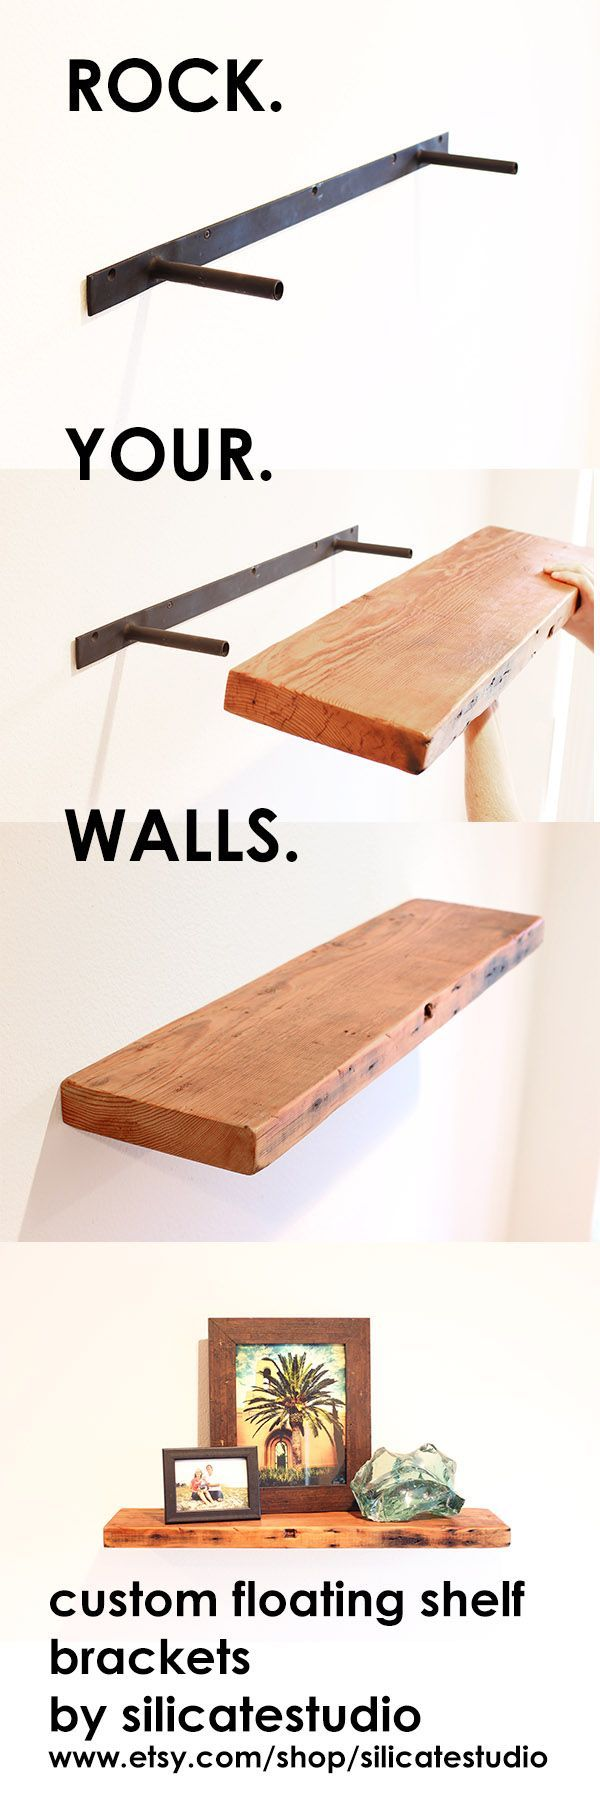 Make any slab of wood a floating shelf with a tough and invisible custom floating shelf bracket from silicate studio. Works especially well with reclaimed wood. www.etsy.com/shop/silicatestudio #reclaimedwoodfurniture